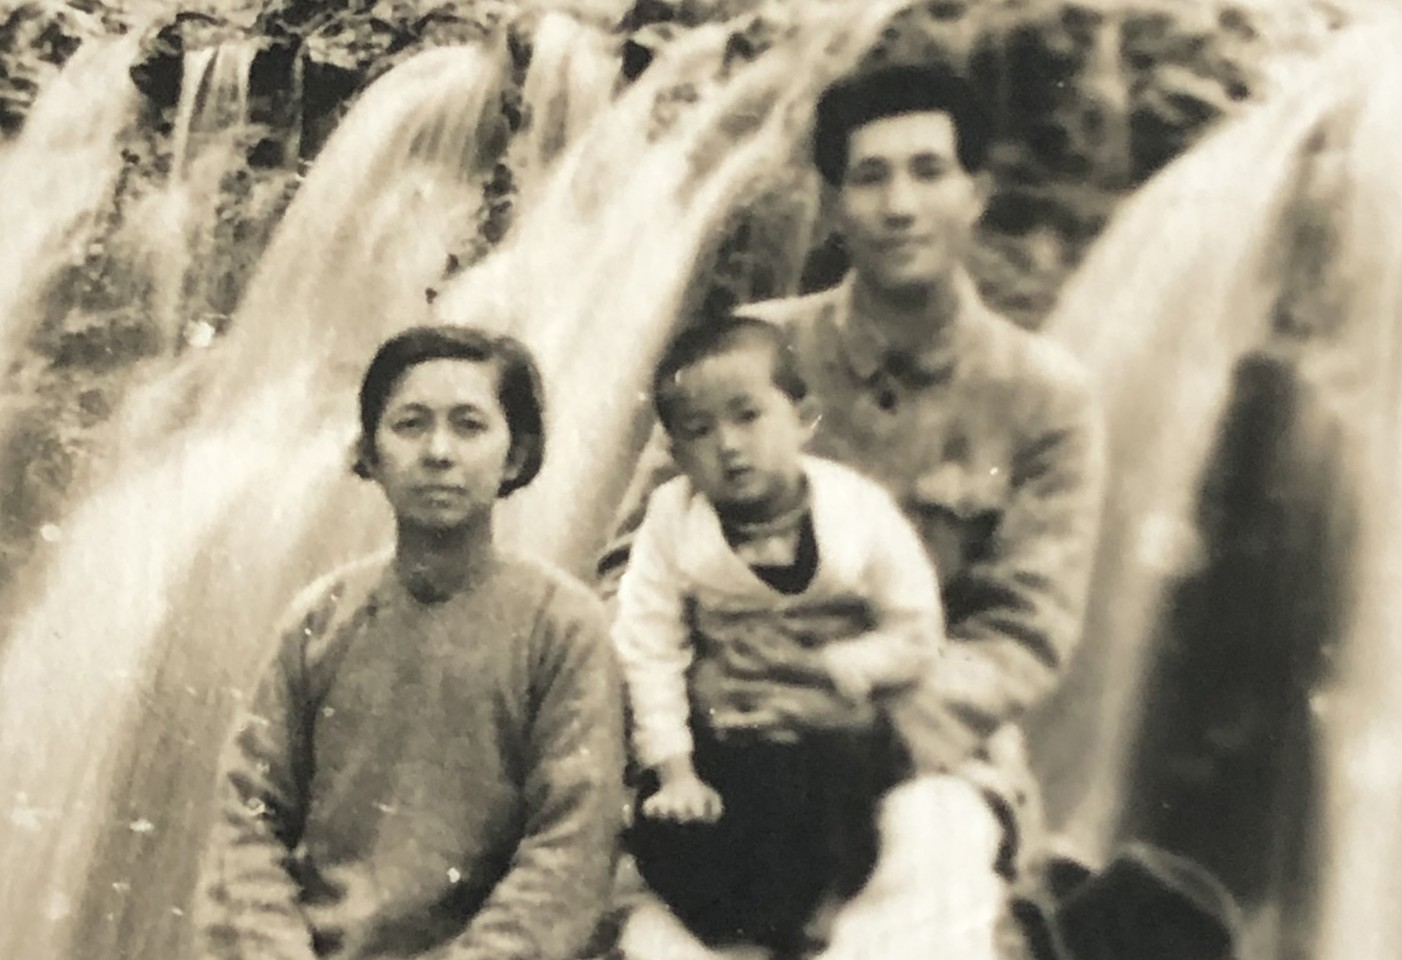 Teo Soon Kim's family photo showing her husband, Wang Zhengang, and their son, Peter Wang.